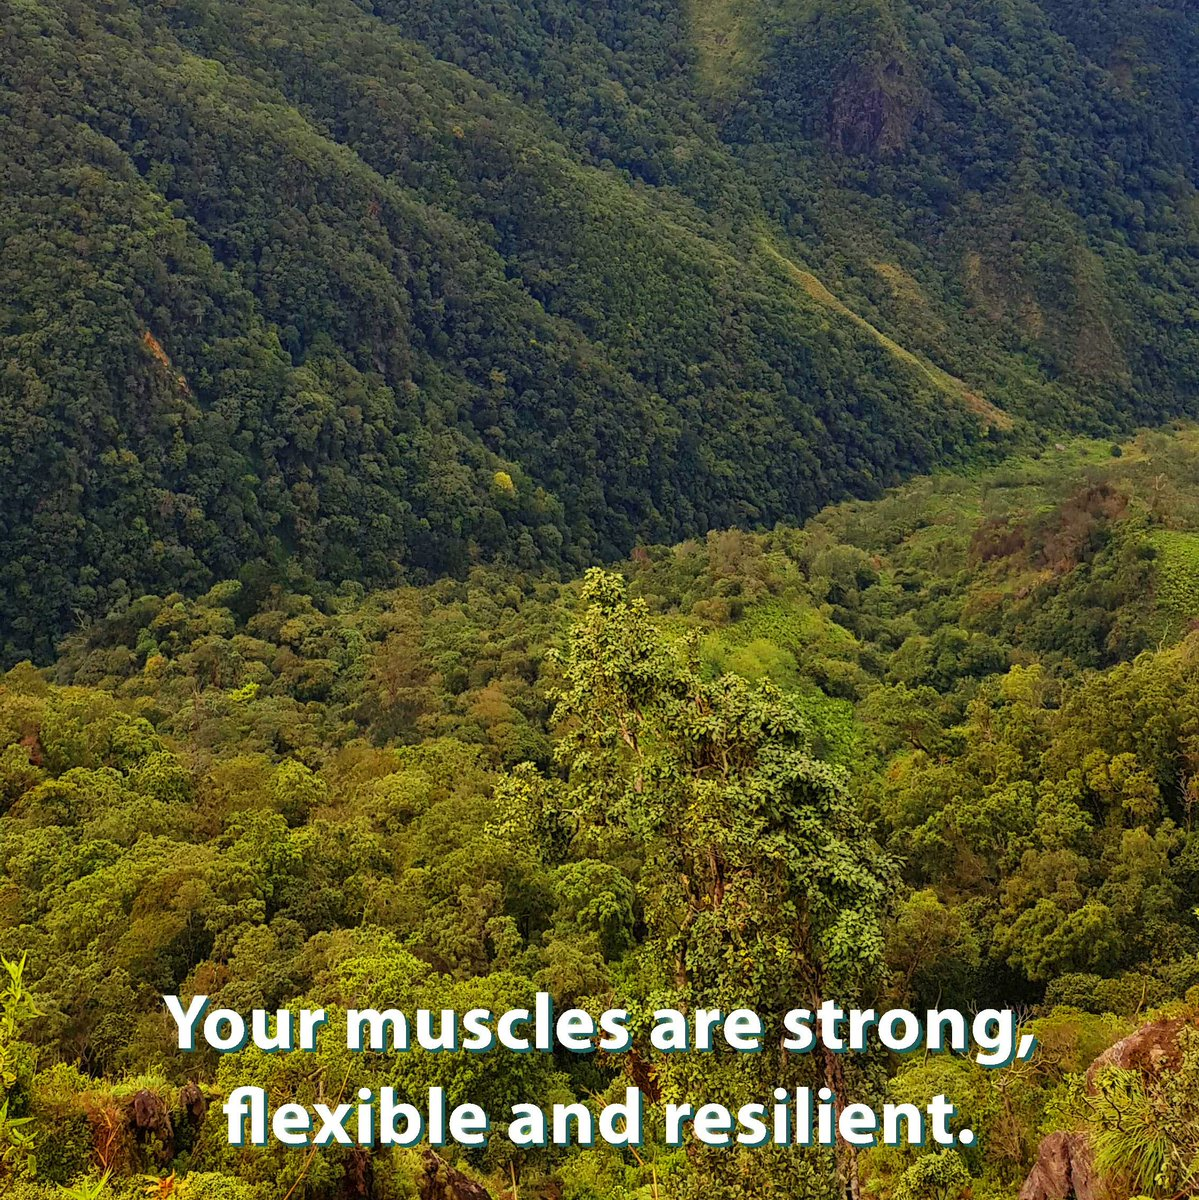 Your muscles are strong and resilient.  🌲Follow for daily affirmation photos and more🌲 🌲@leaftreeaffirmations🌲  #leaftree #leaftreeaffirmations #photo_forest_gold #treehugger #lonely_tree_love #treelover #naturediversity #writersofinstagram #positivethoughts https://t.co/nb7JJxE1nJ